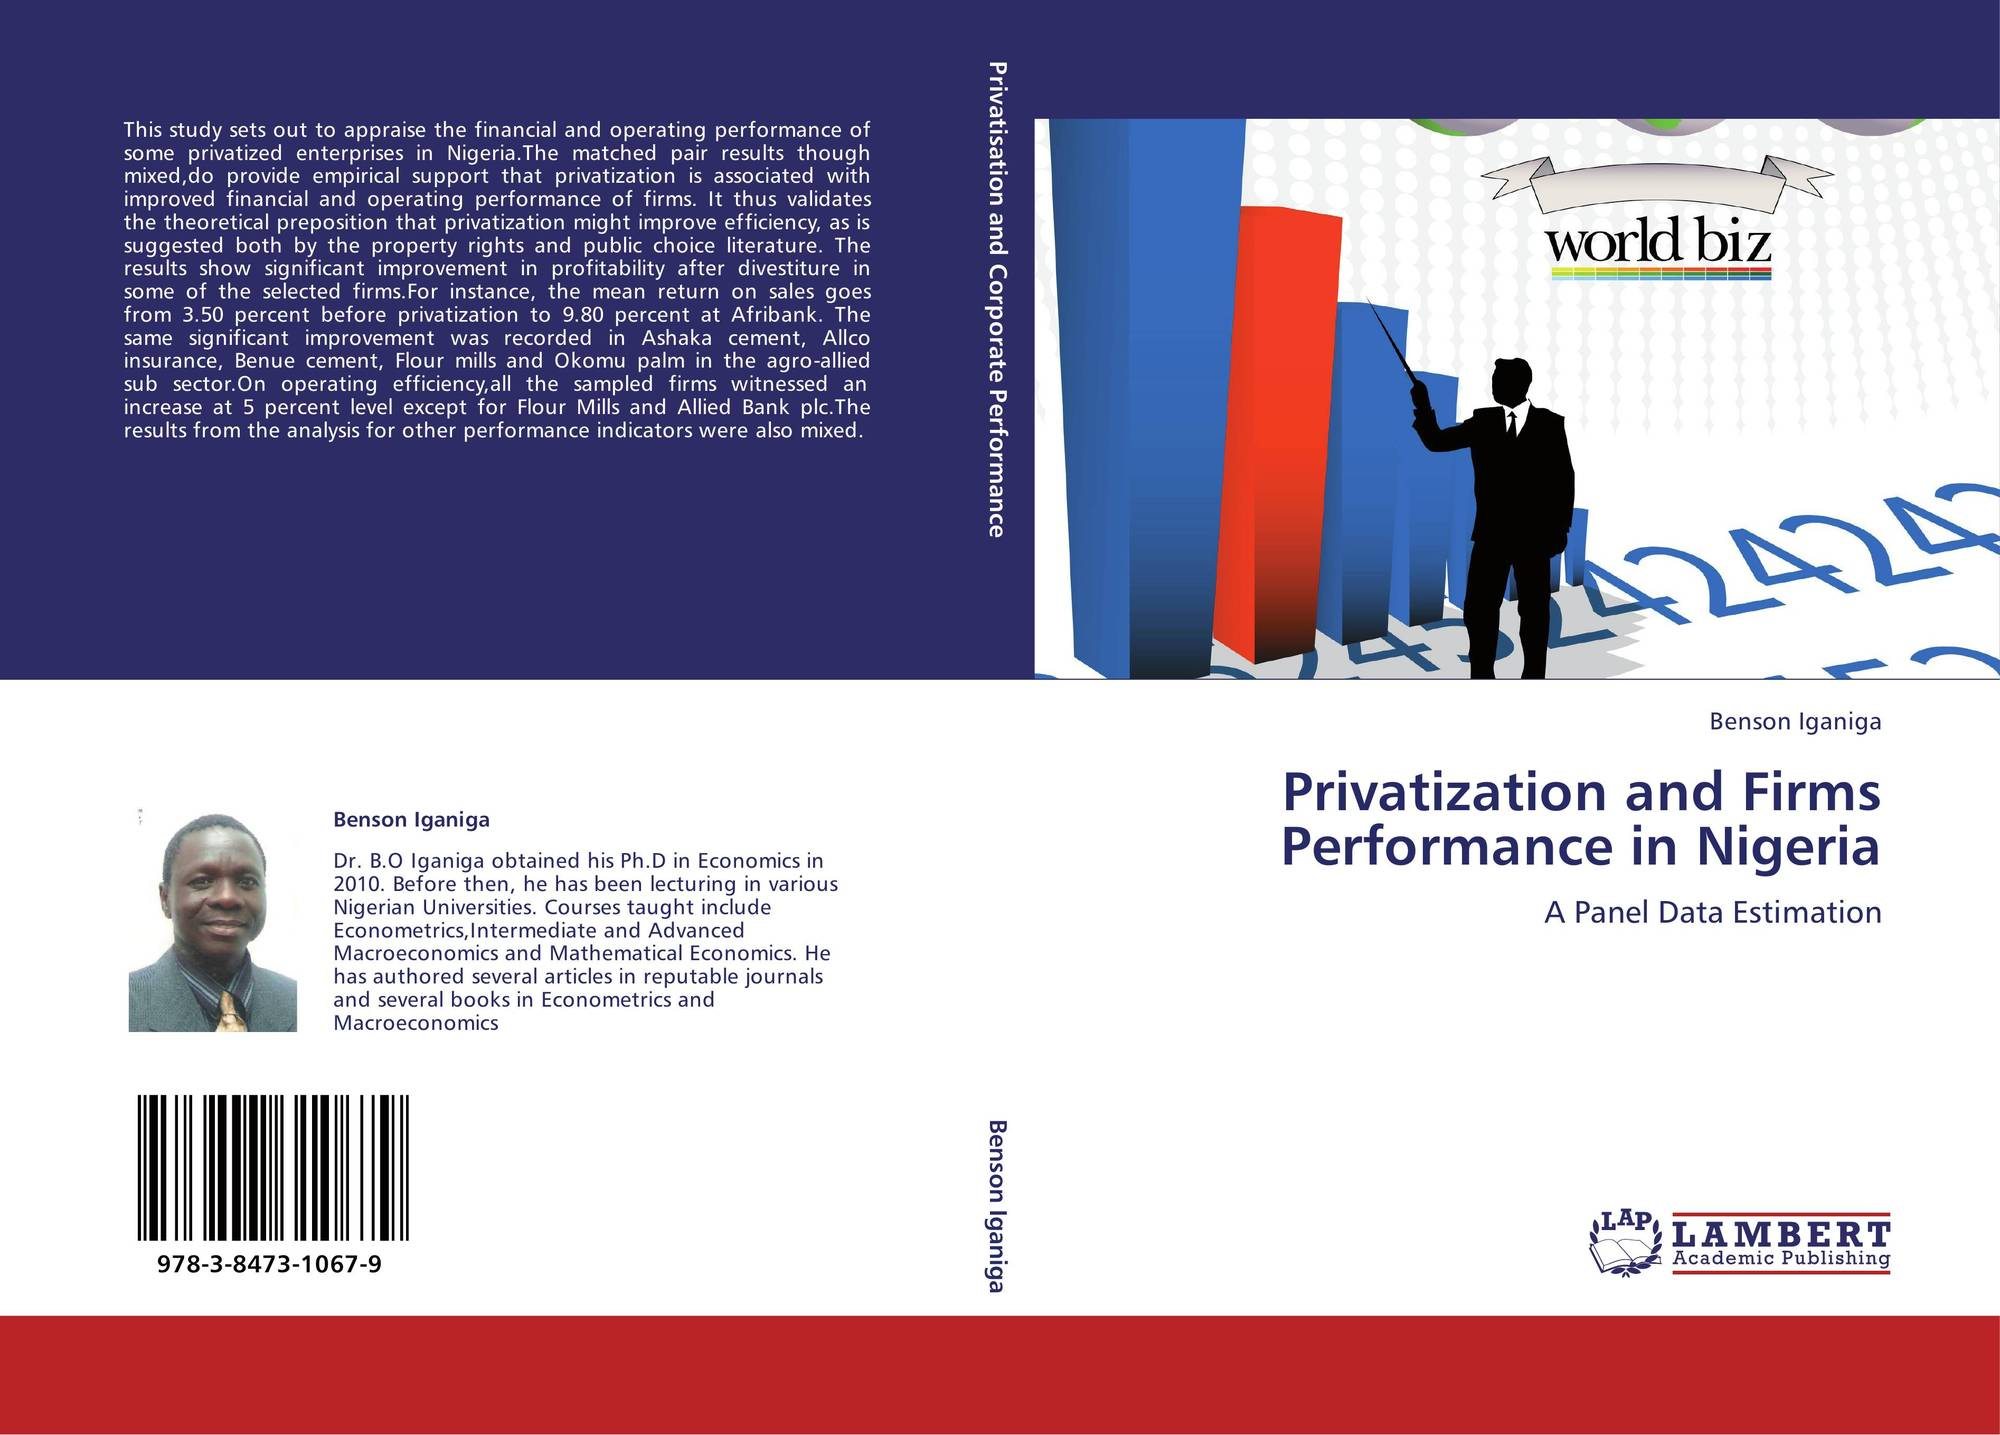 impact of privatization on firms performance Privatized firms with weak corporate governance have repeatedly demonstrated weak performance and have frequently been tunneled by their 23 empirical literature there is hardly empirical literature on the impact of privatization on corporate governance, though the issue of corporate.